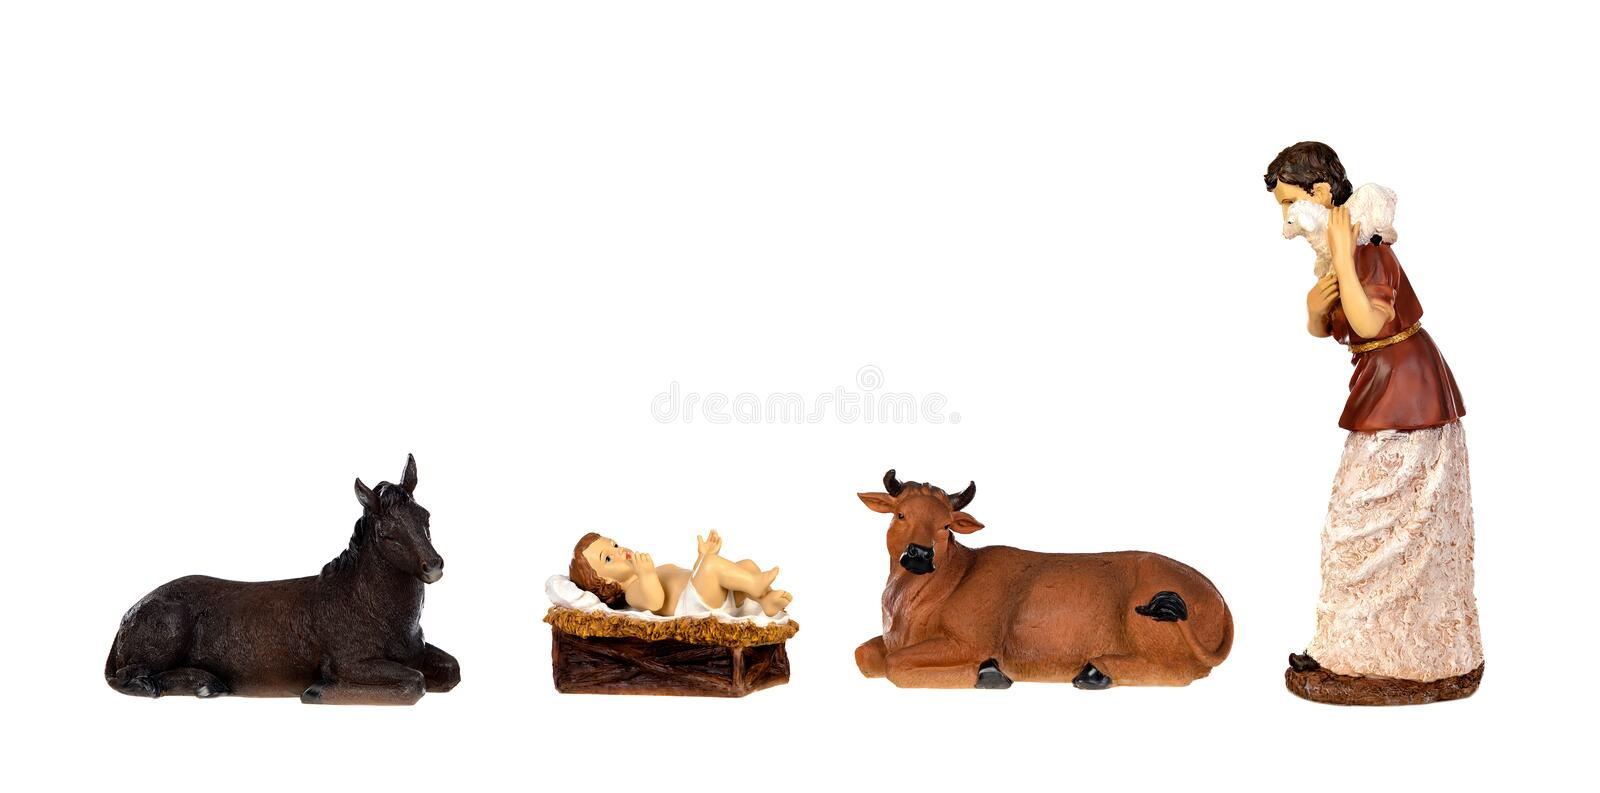 The Baby Jesus in the manger with the ox and the mule royalty free stock photography